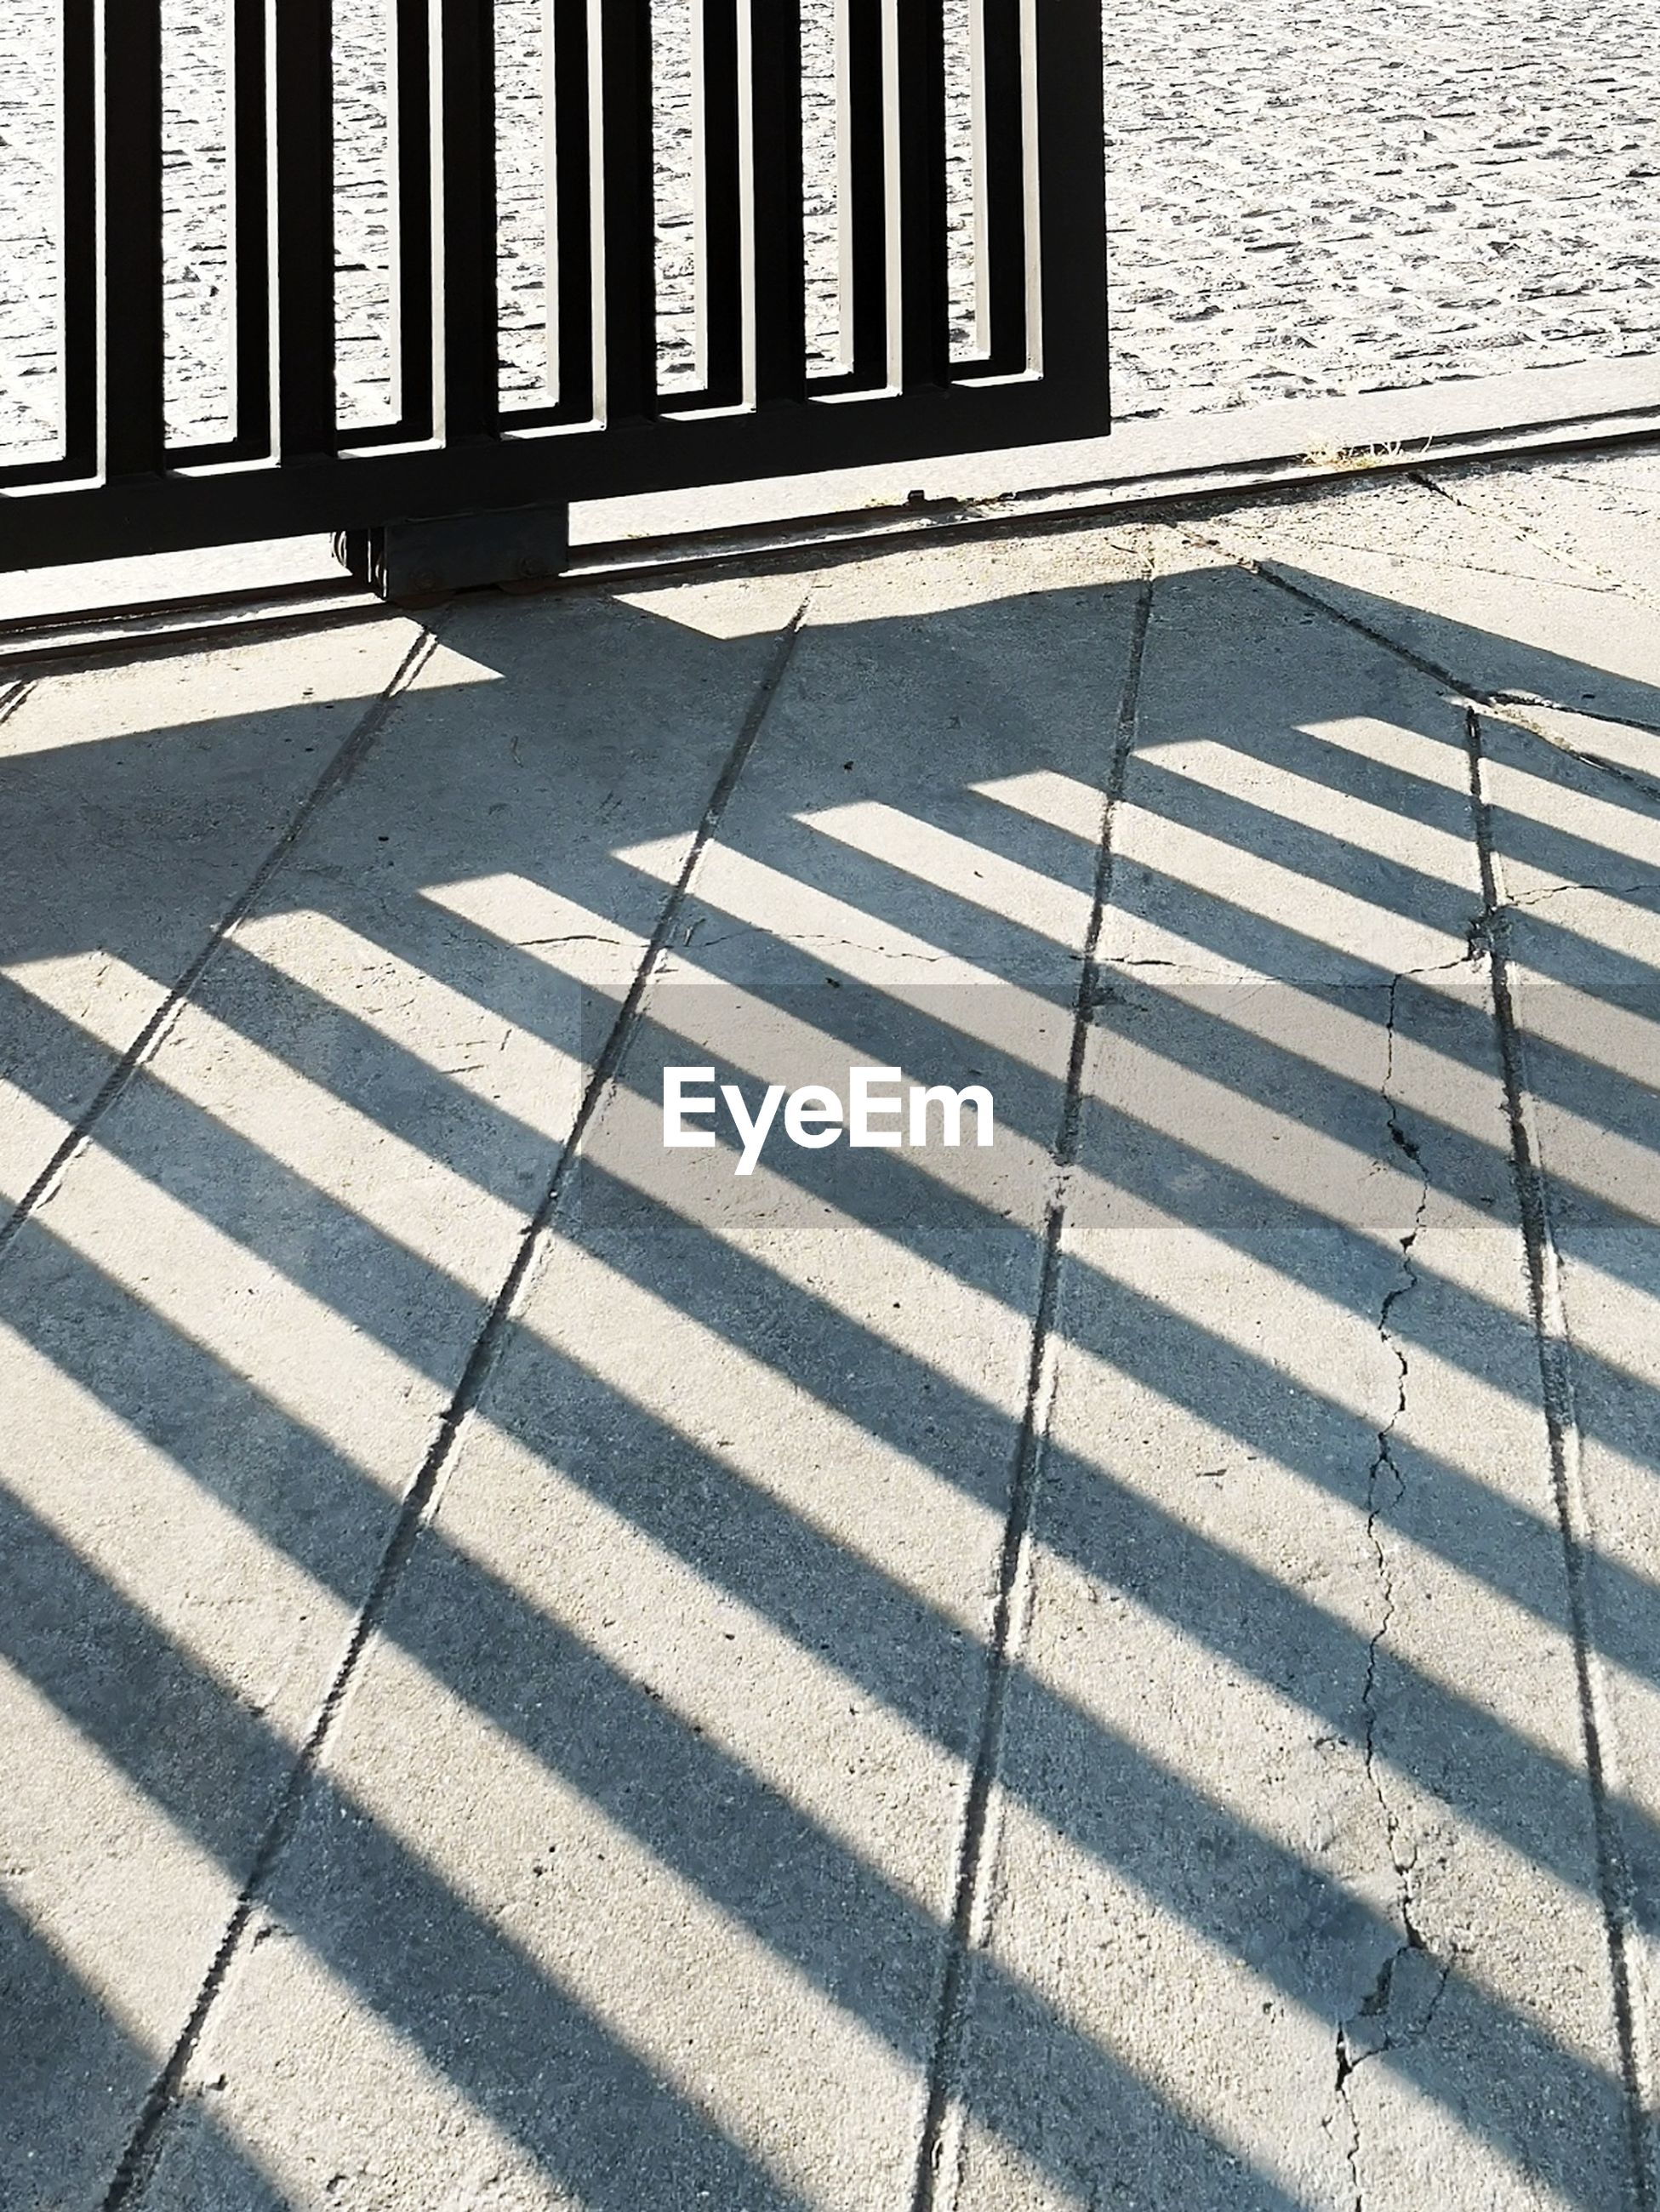 shadow, sunlight, day, nature, no people, architecture, pattern, outdoors, street, flooring, footpath, city, built structure, railing, striped, security, absence, high angle view, metal, crosswalk, tiled floor, focus on shadow